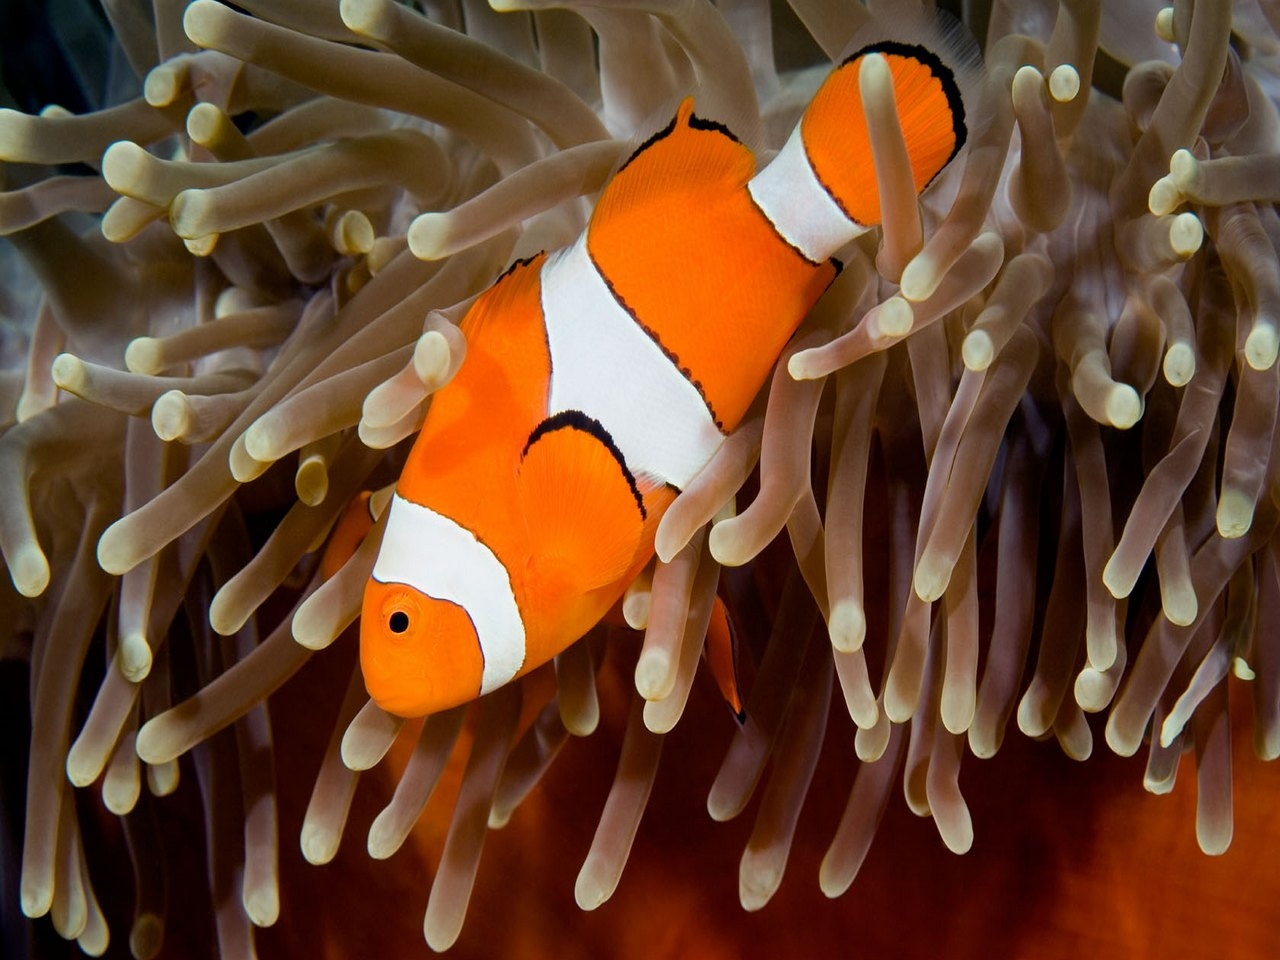 36647 download wallpaper Animals, Fishes screensavers and pictures for free